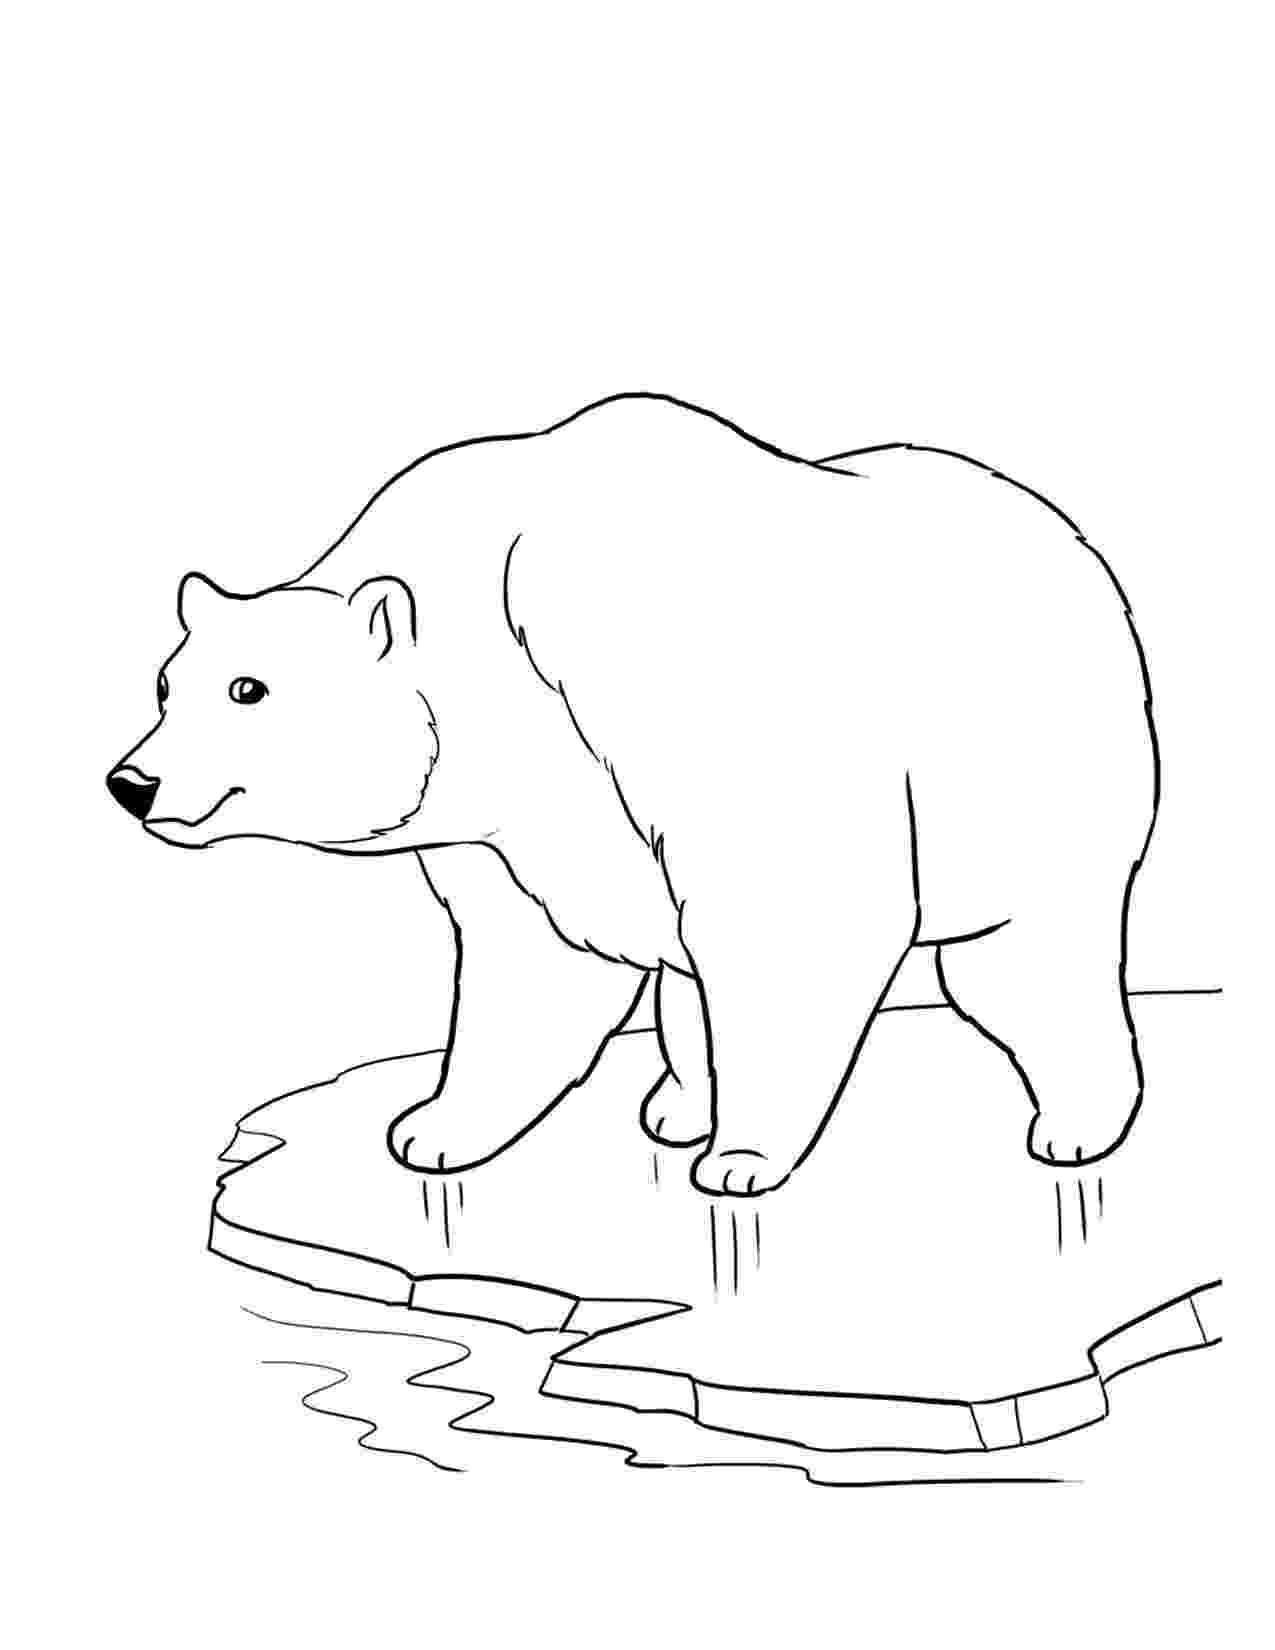 coloring page bear free printable bear coloring pages for kids bear coloring page